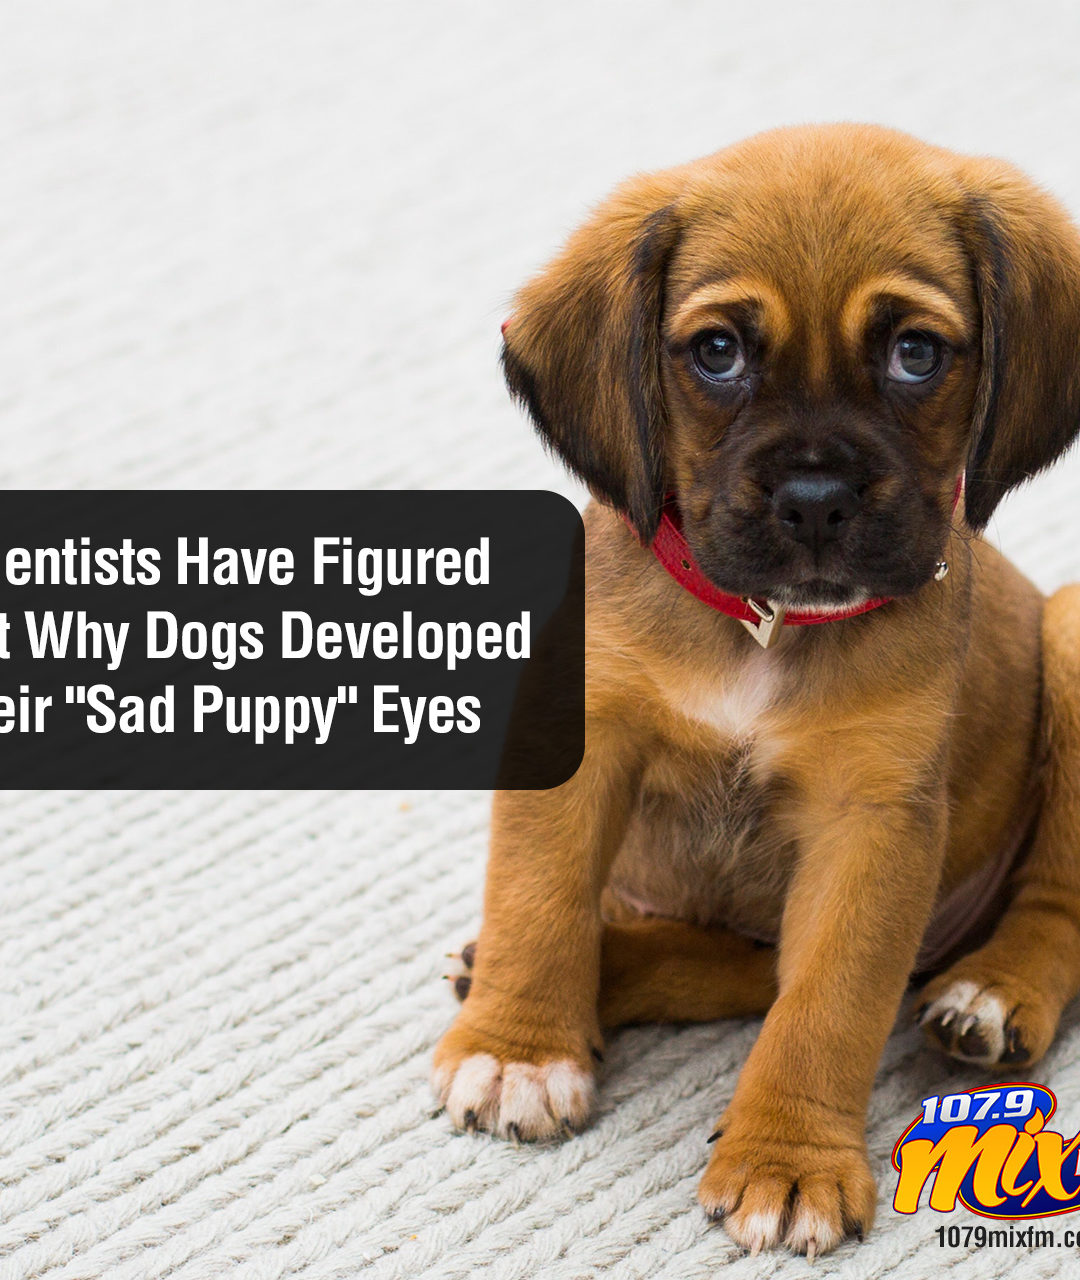 """Scientists Have Figured Out Why Dogs Developed Their """"Sad Puppy"""" Eyes"""